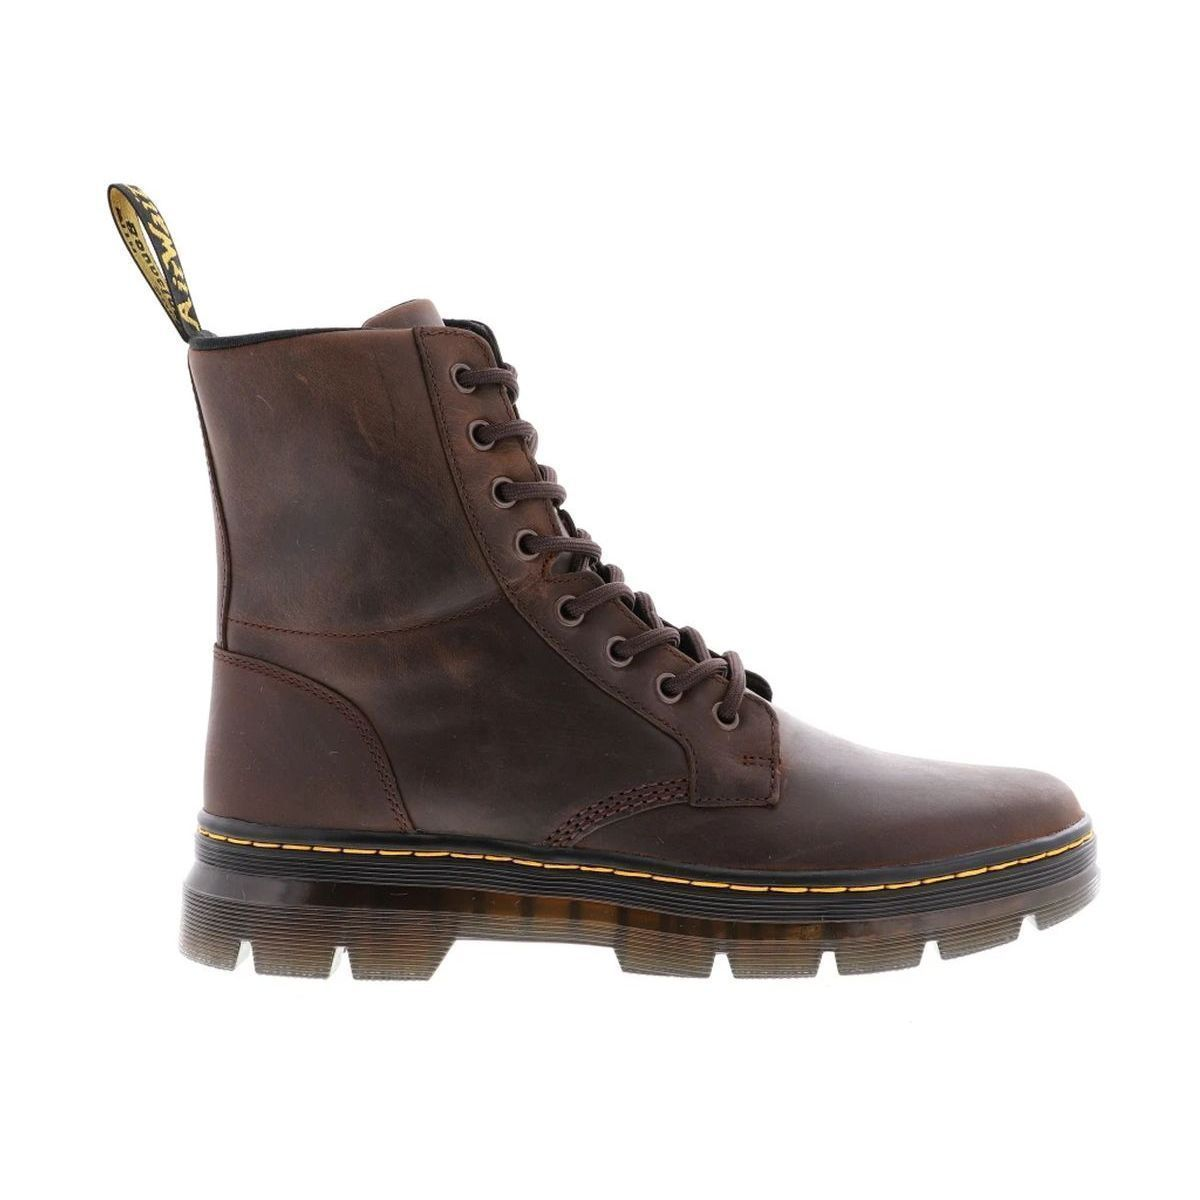 Dr Martens COMBS LEATHER